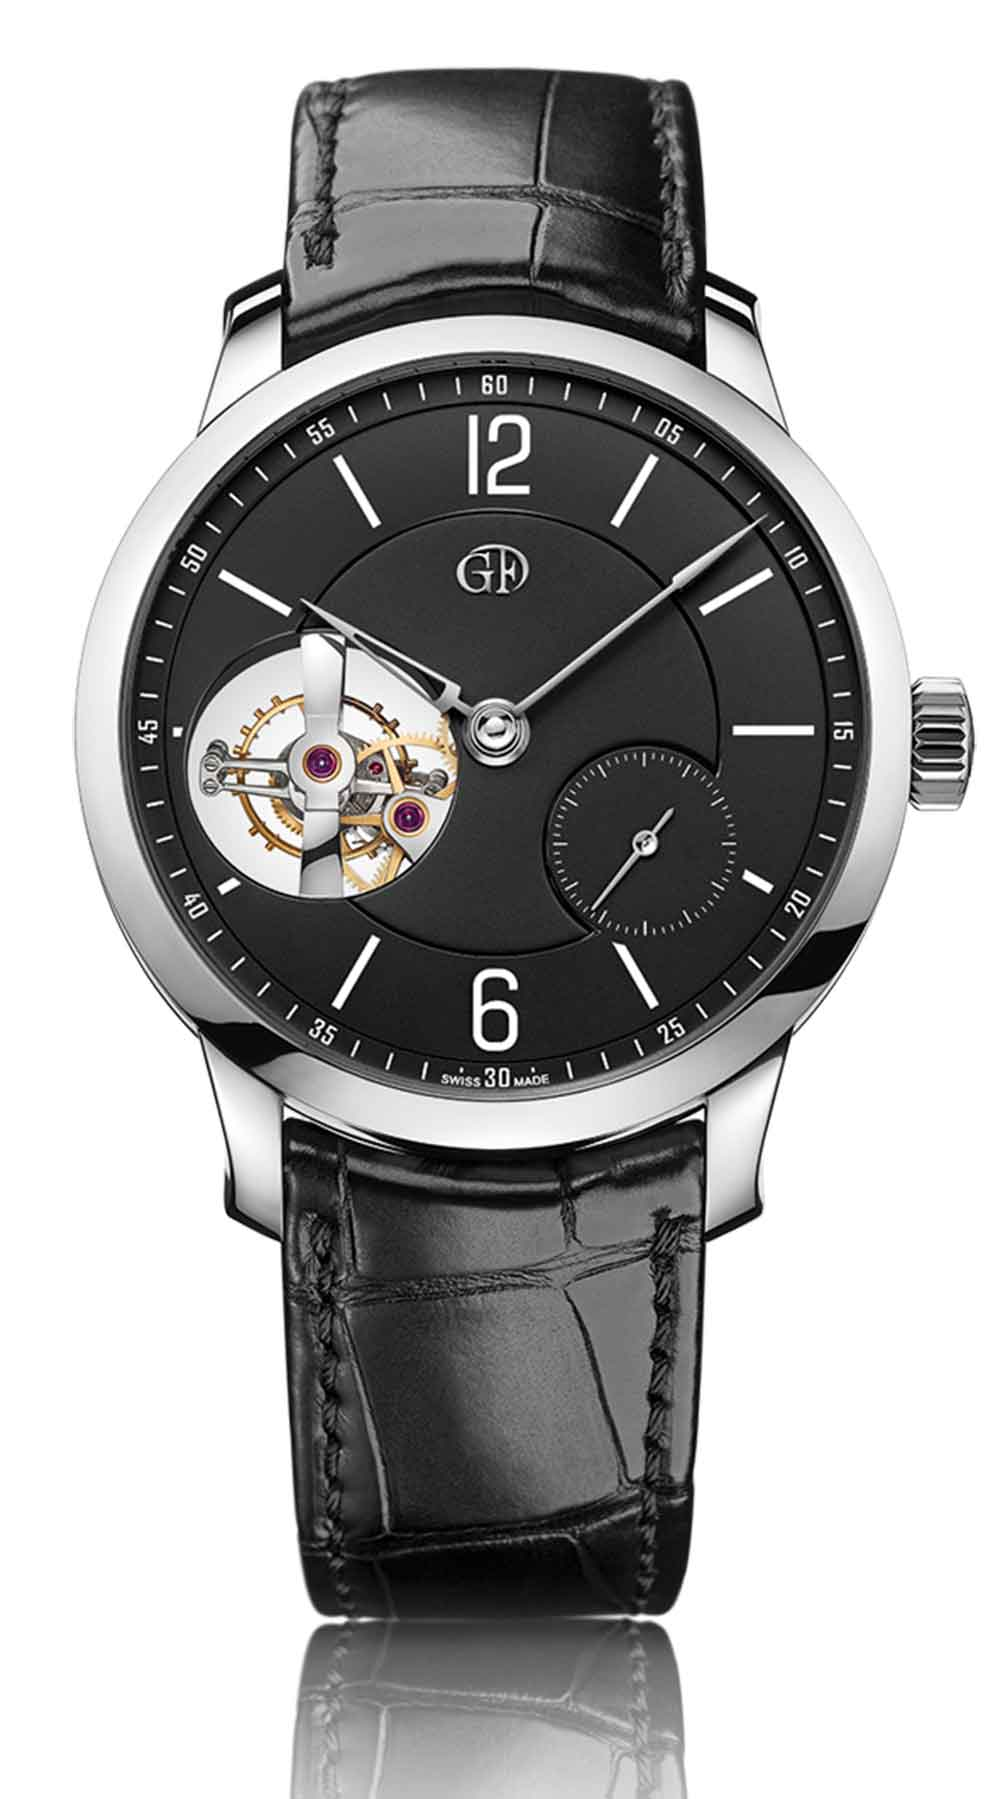 Greubel Forsey Tourbillon 24 Secondes Vision, anthracite